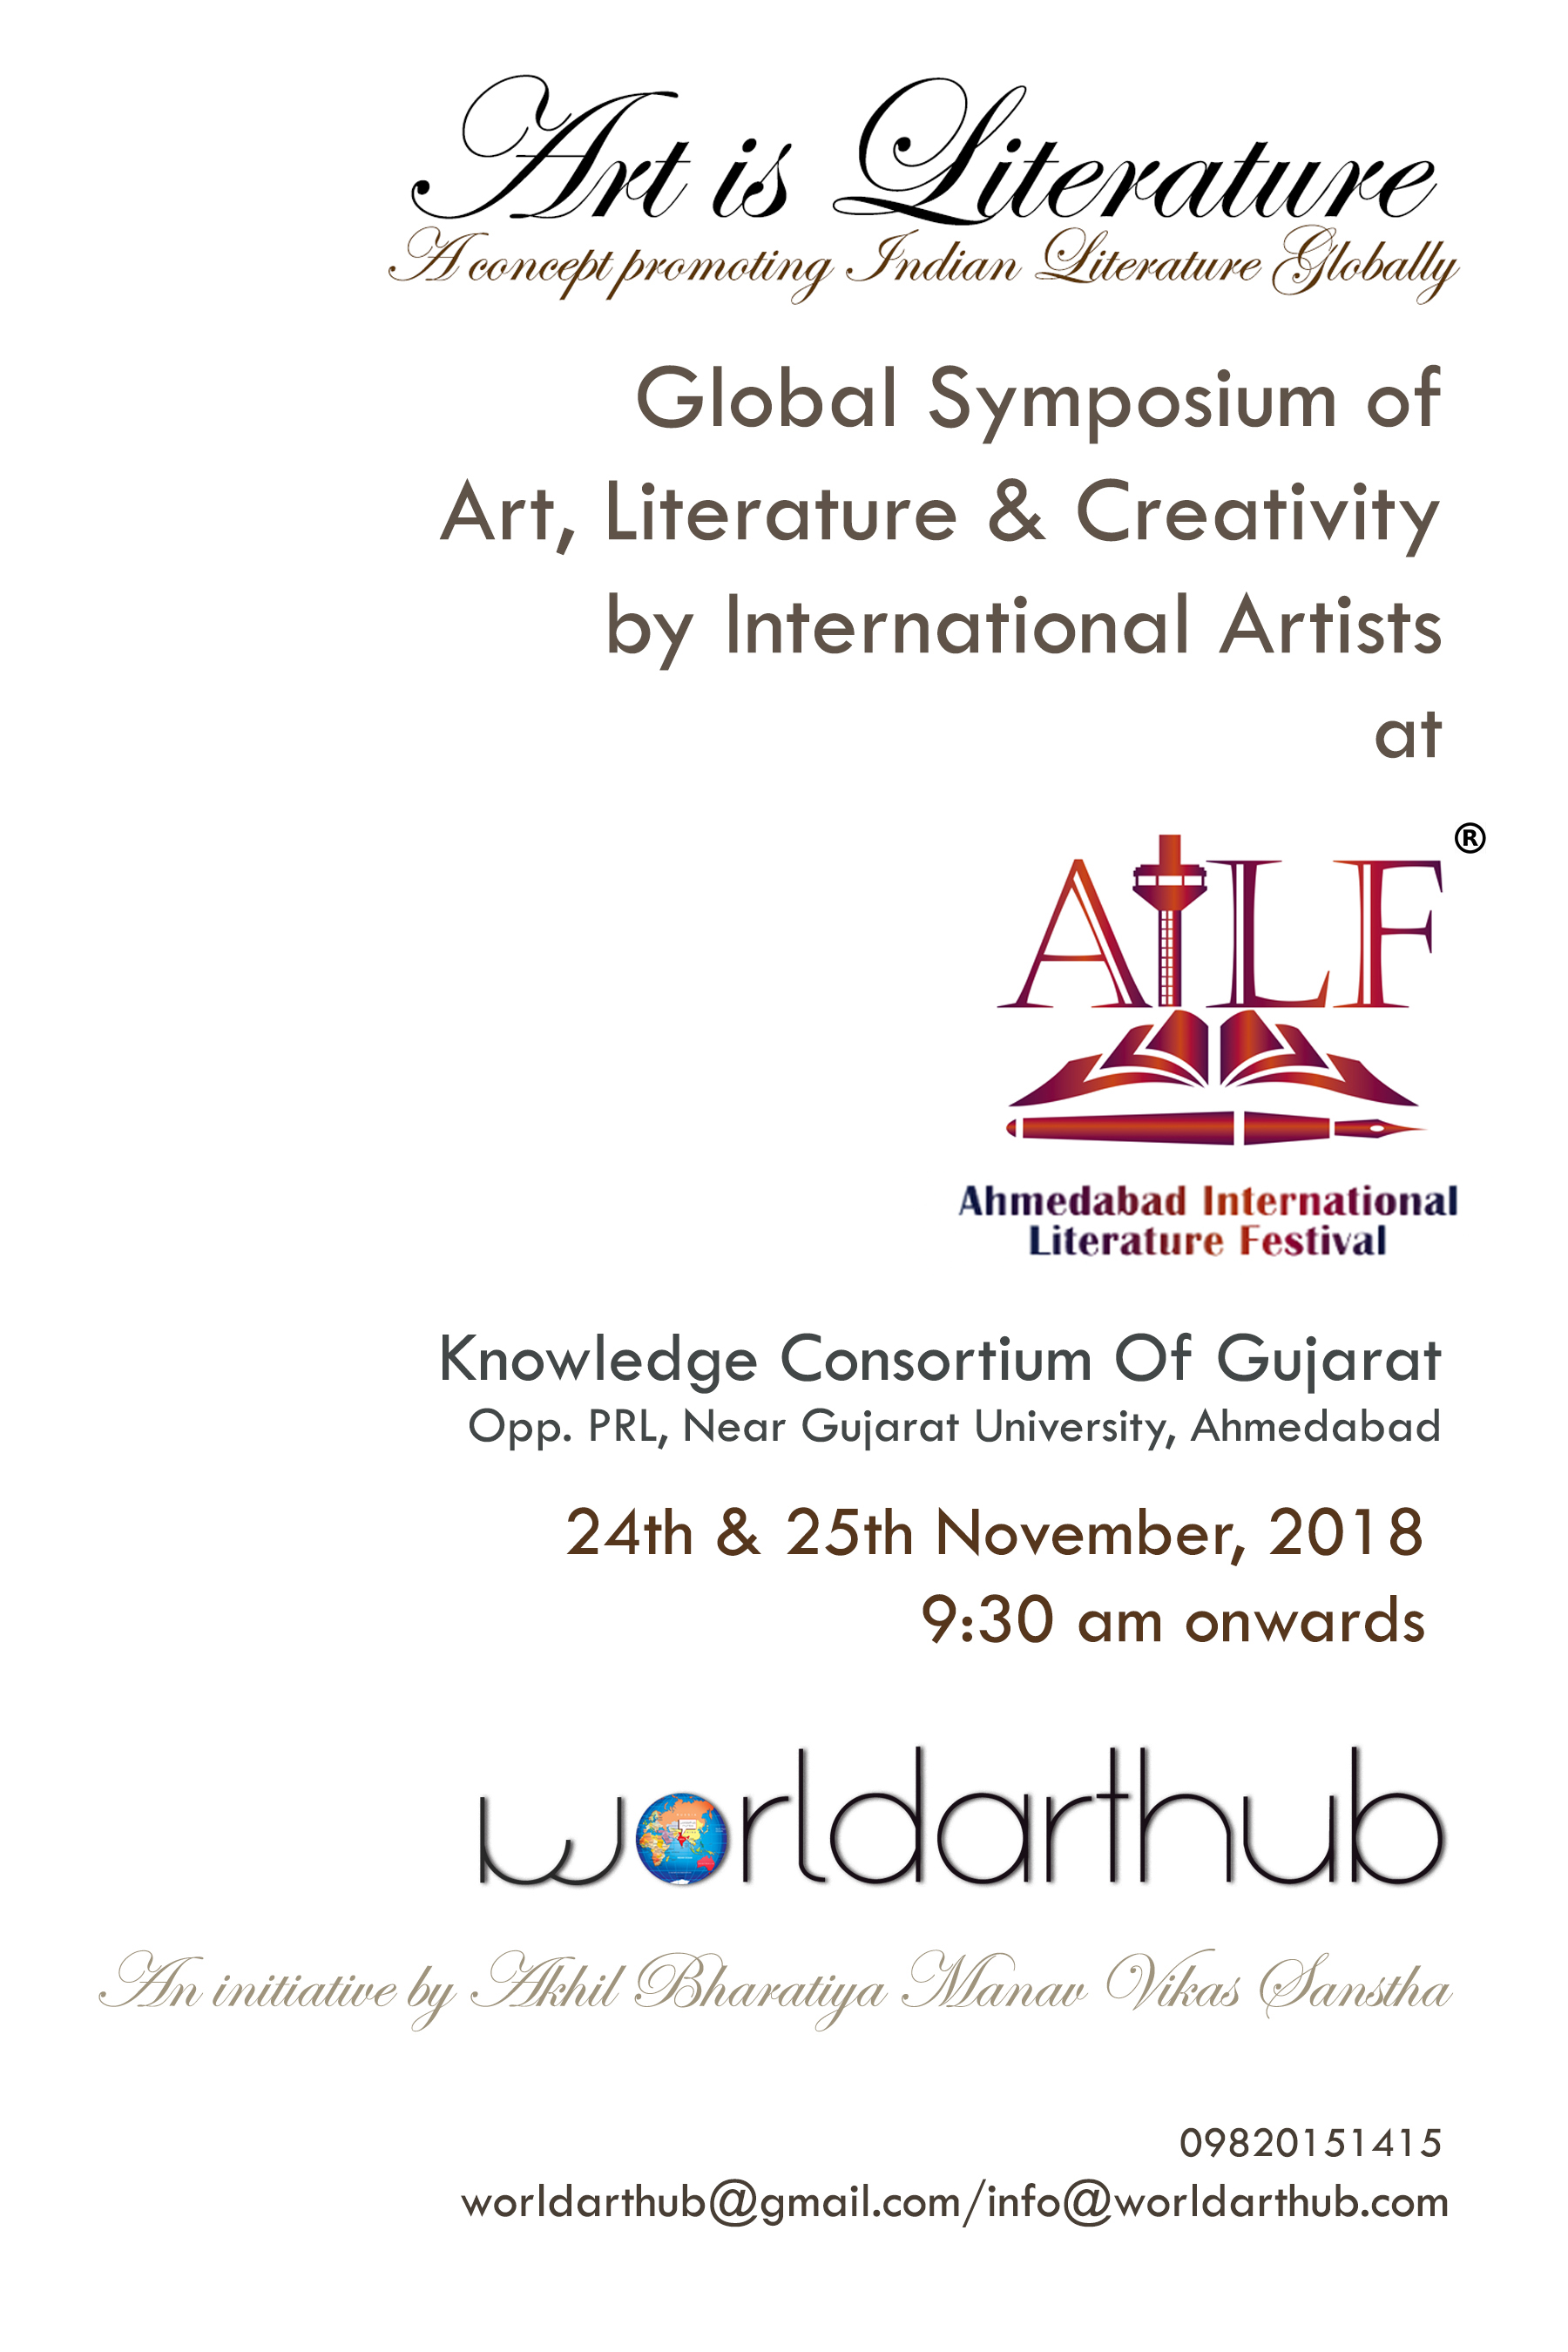 Ahmedabad International Literature Festival 2018